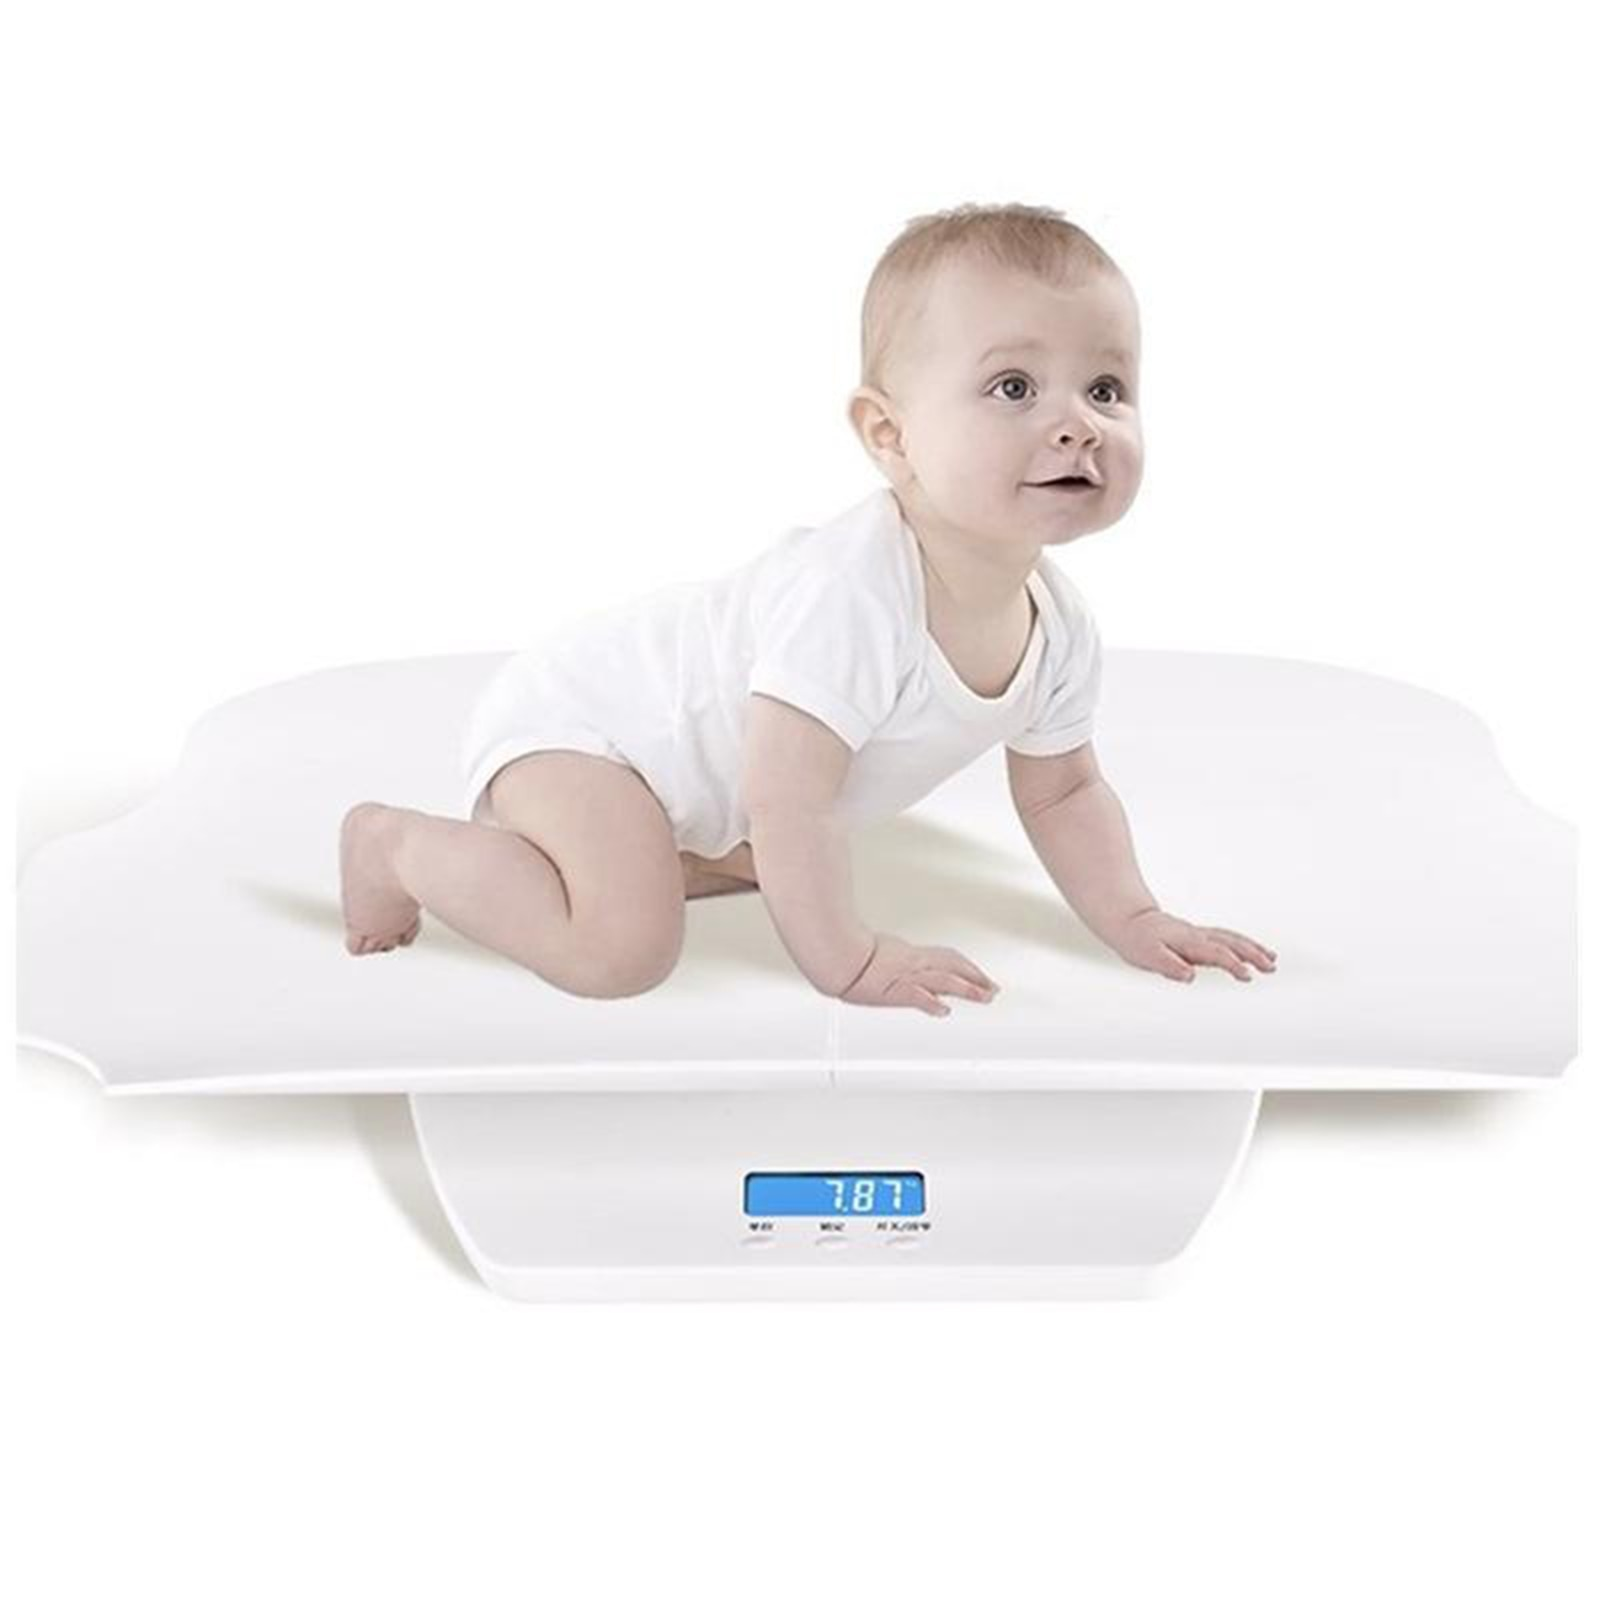 Multi-Function Digital Baby Scale Puppies Weighing Scale Holding Function